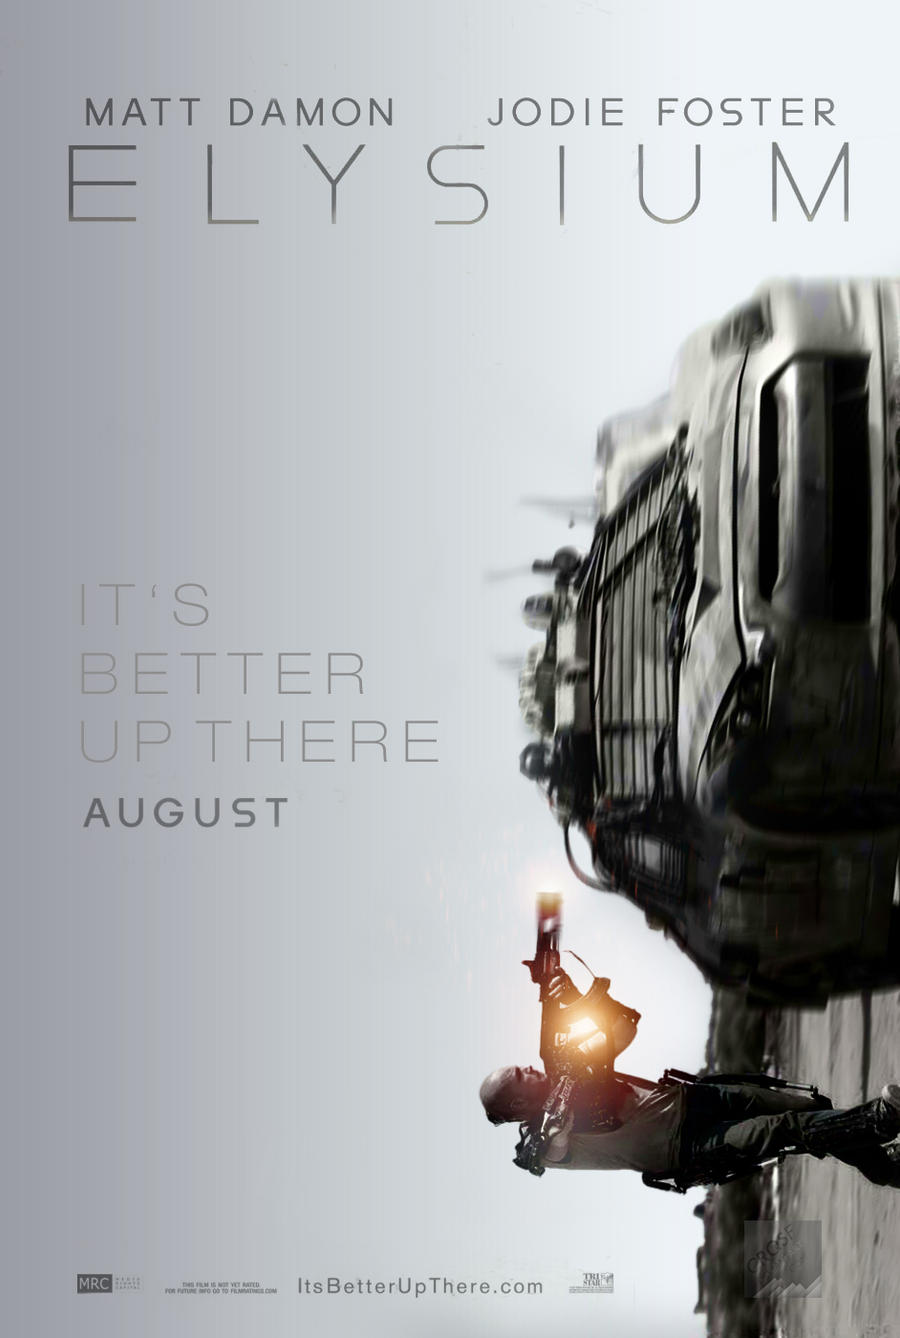 Elysium fan poster 2 by crqsf